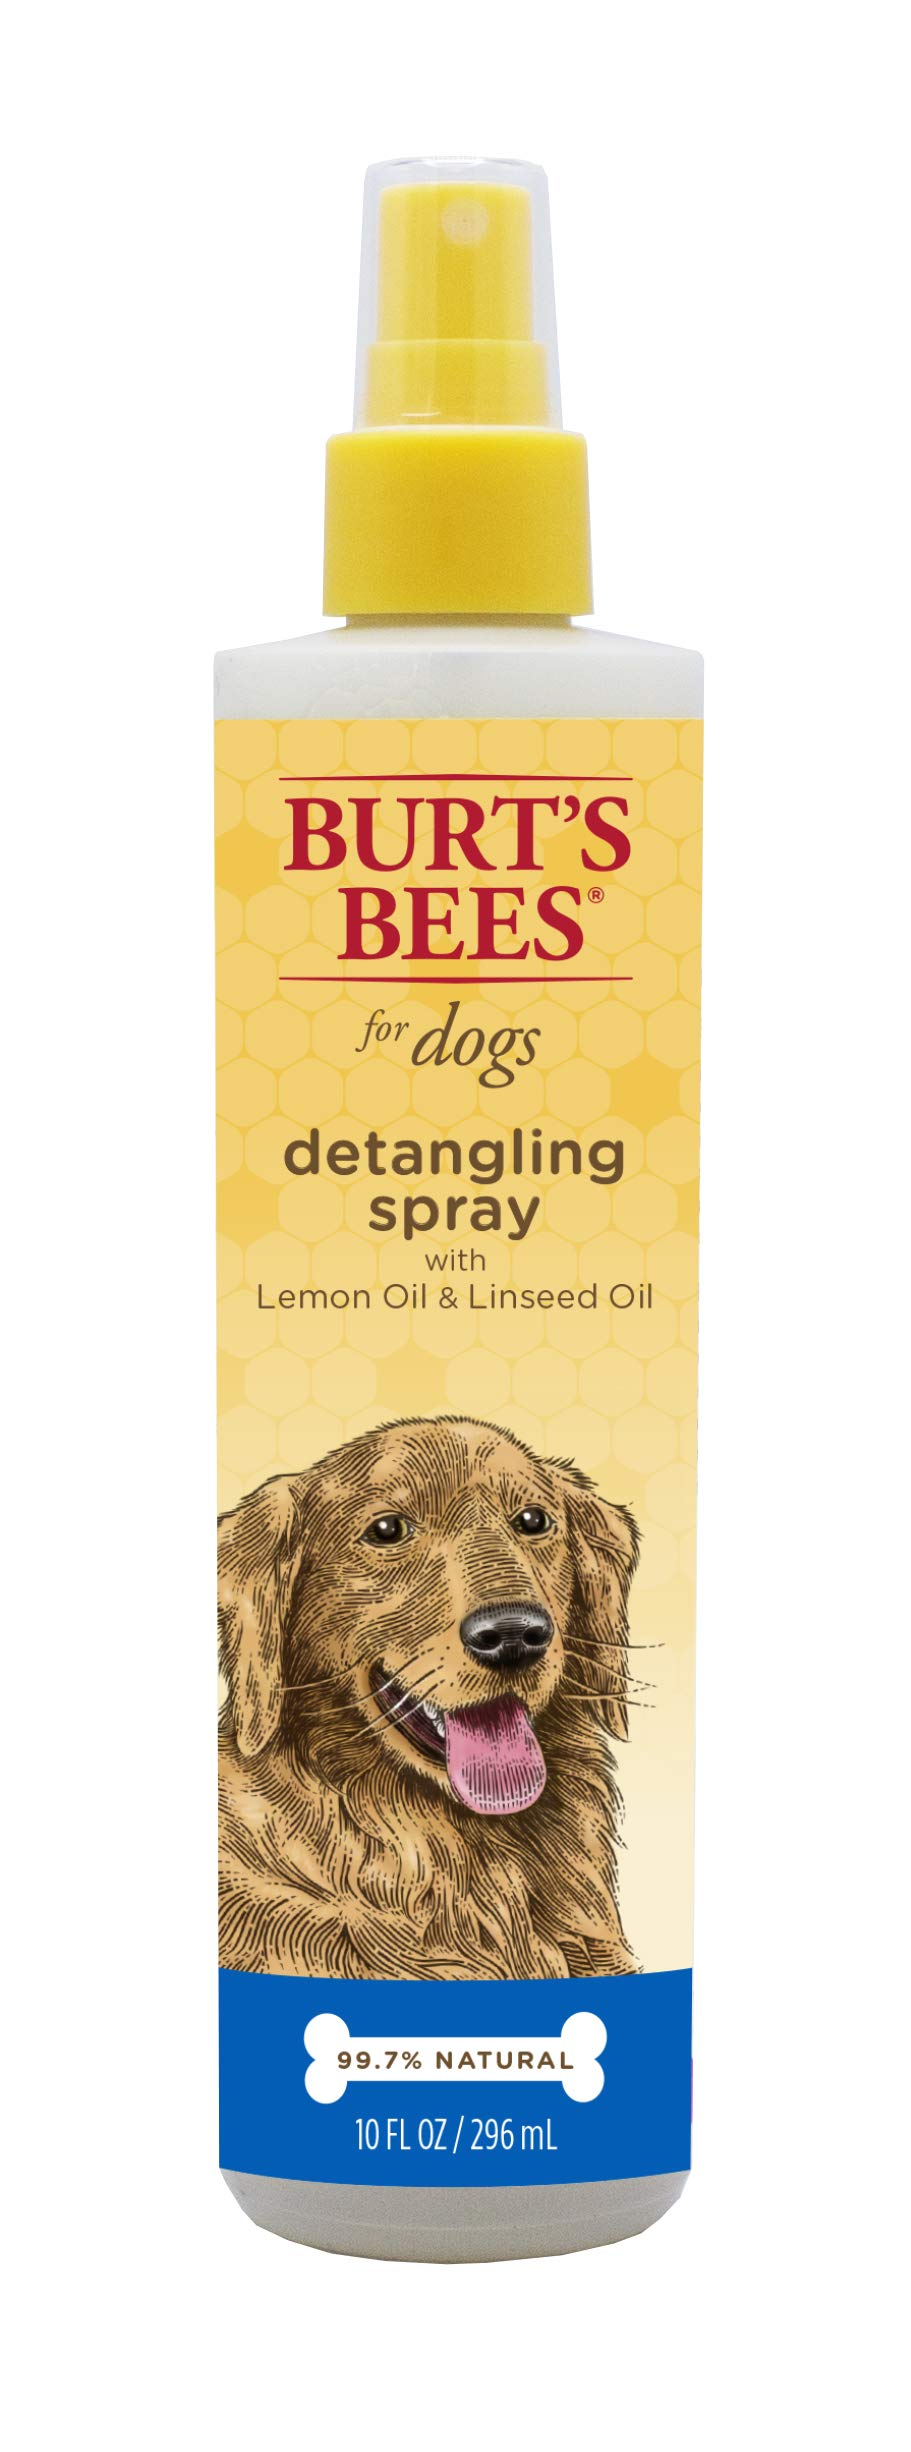 Burt's Bees for Dogs Natural Detangling Spray With Lemon and Linseed   Dog and Puppy Fur Detangler, 10 Ounces